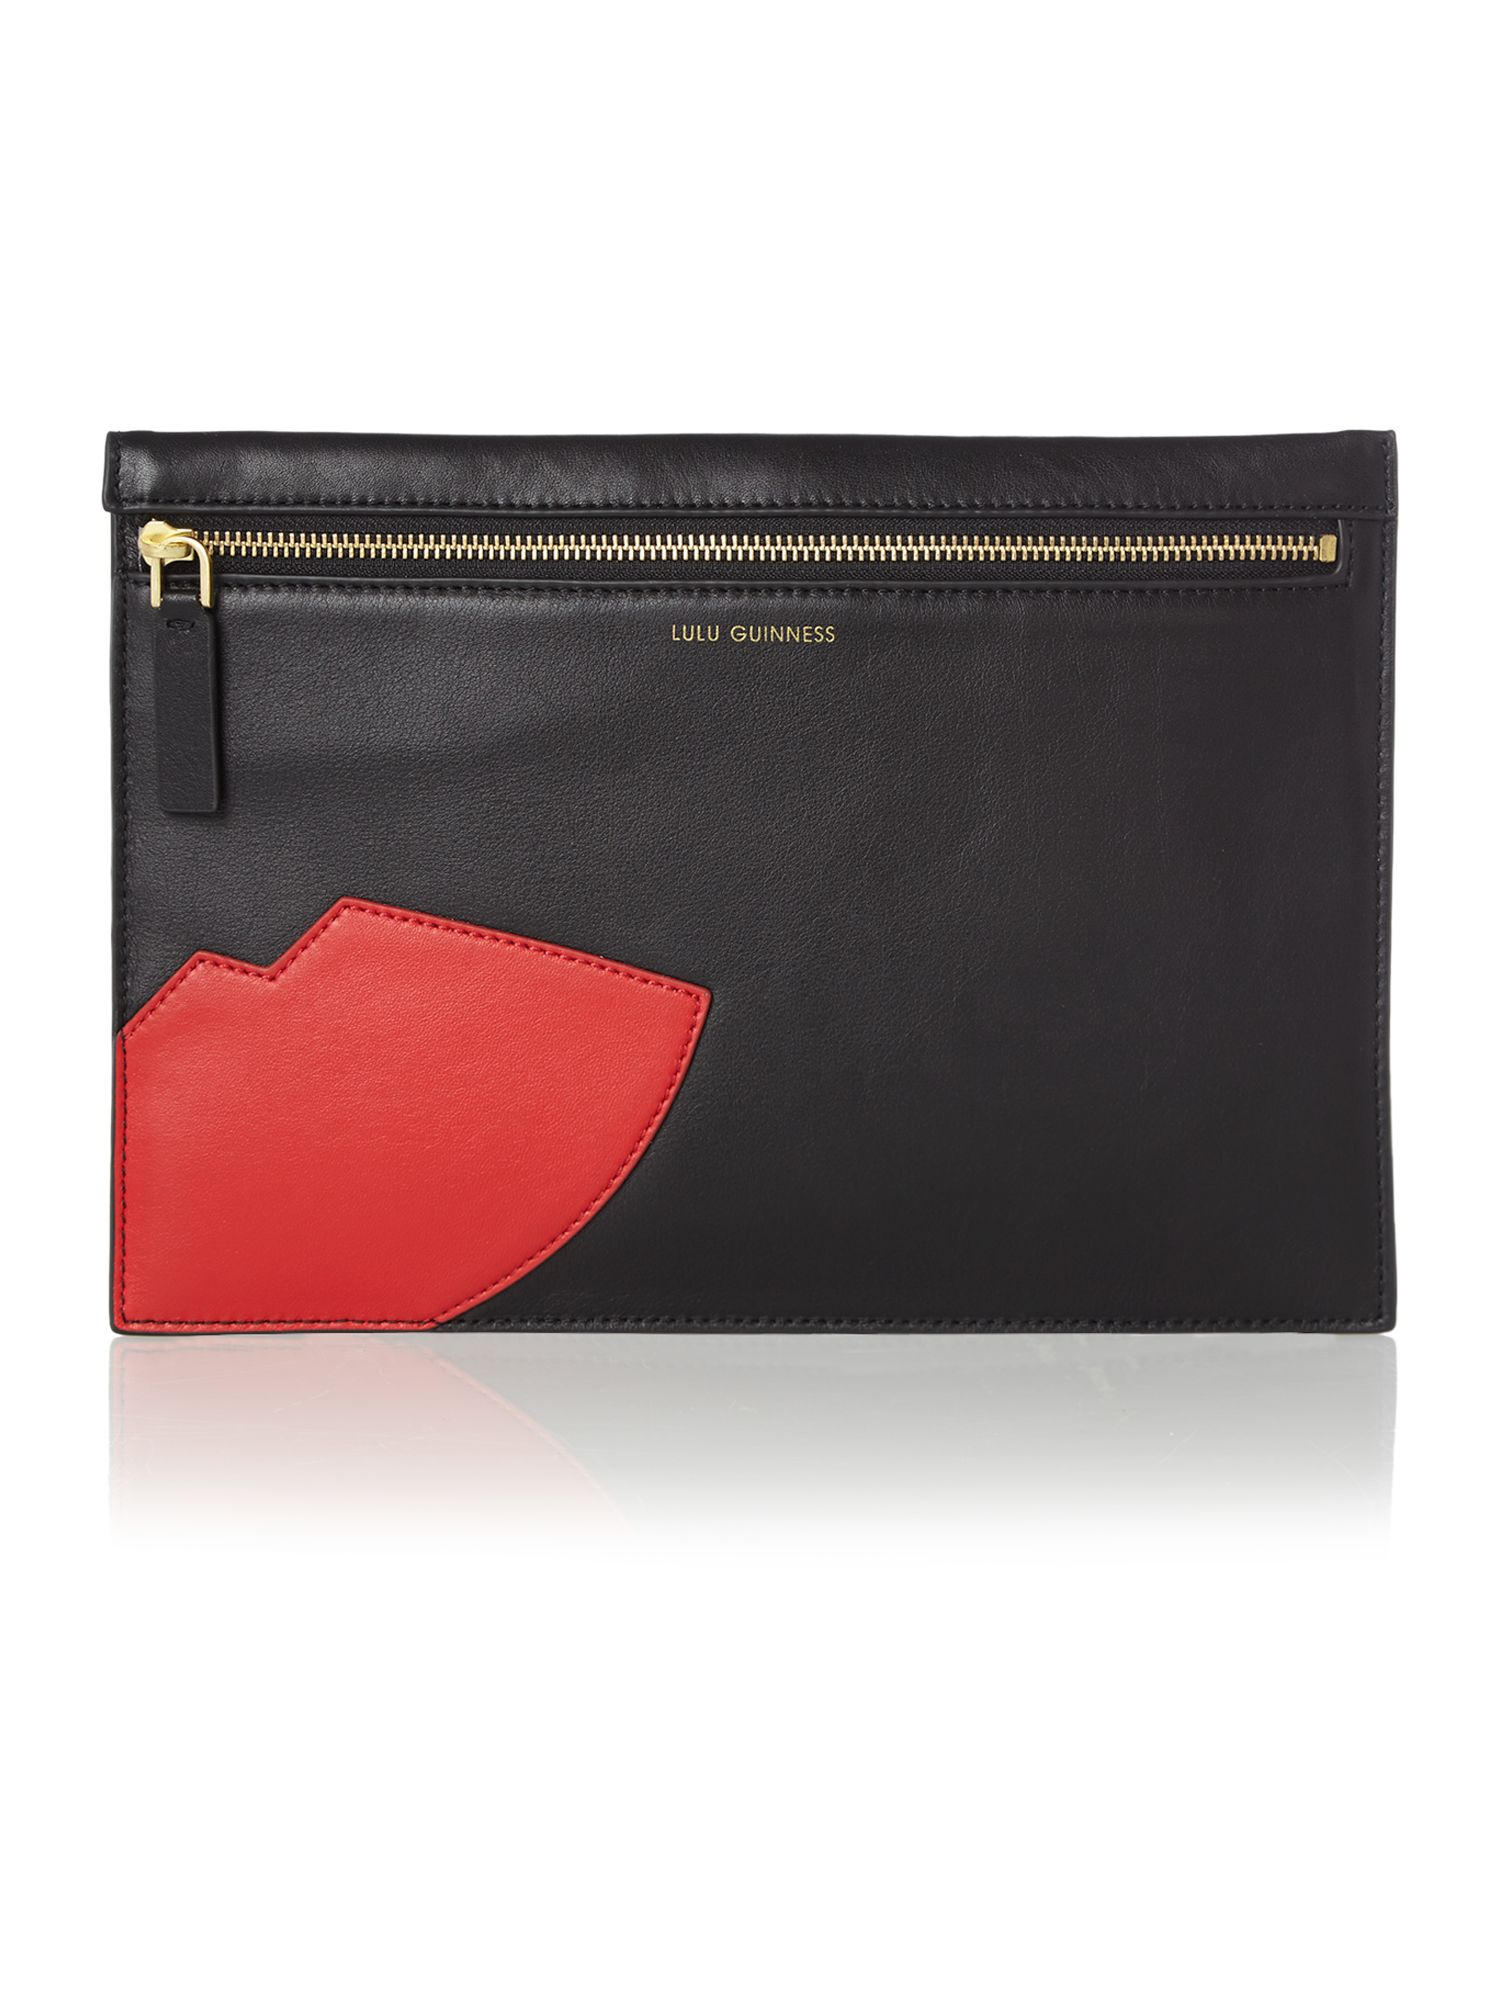 Naomi black lips large clutch bag